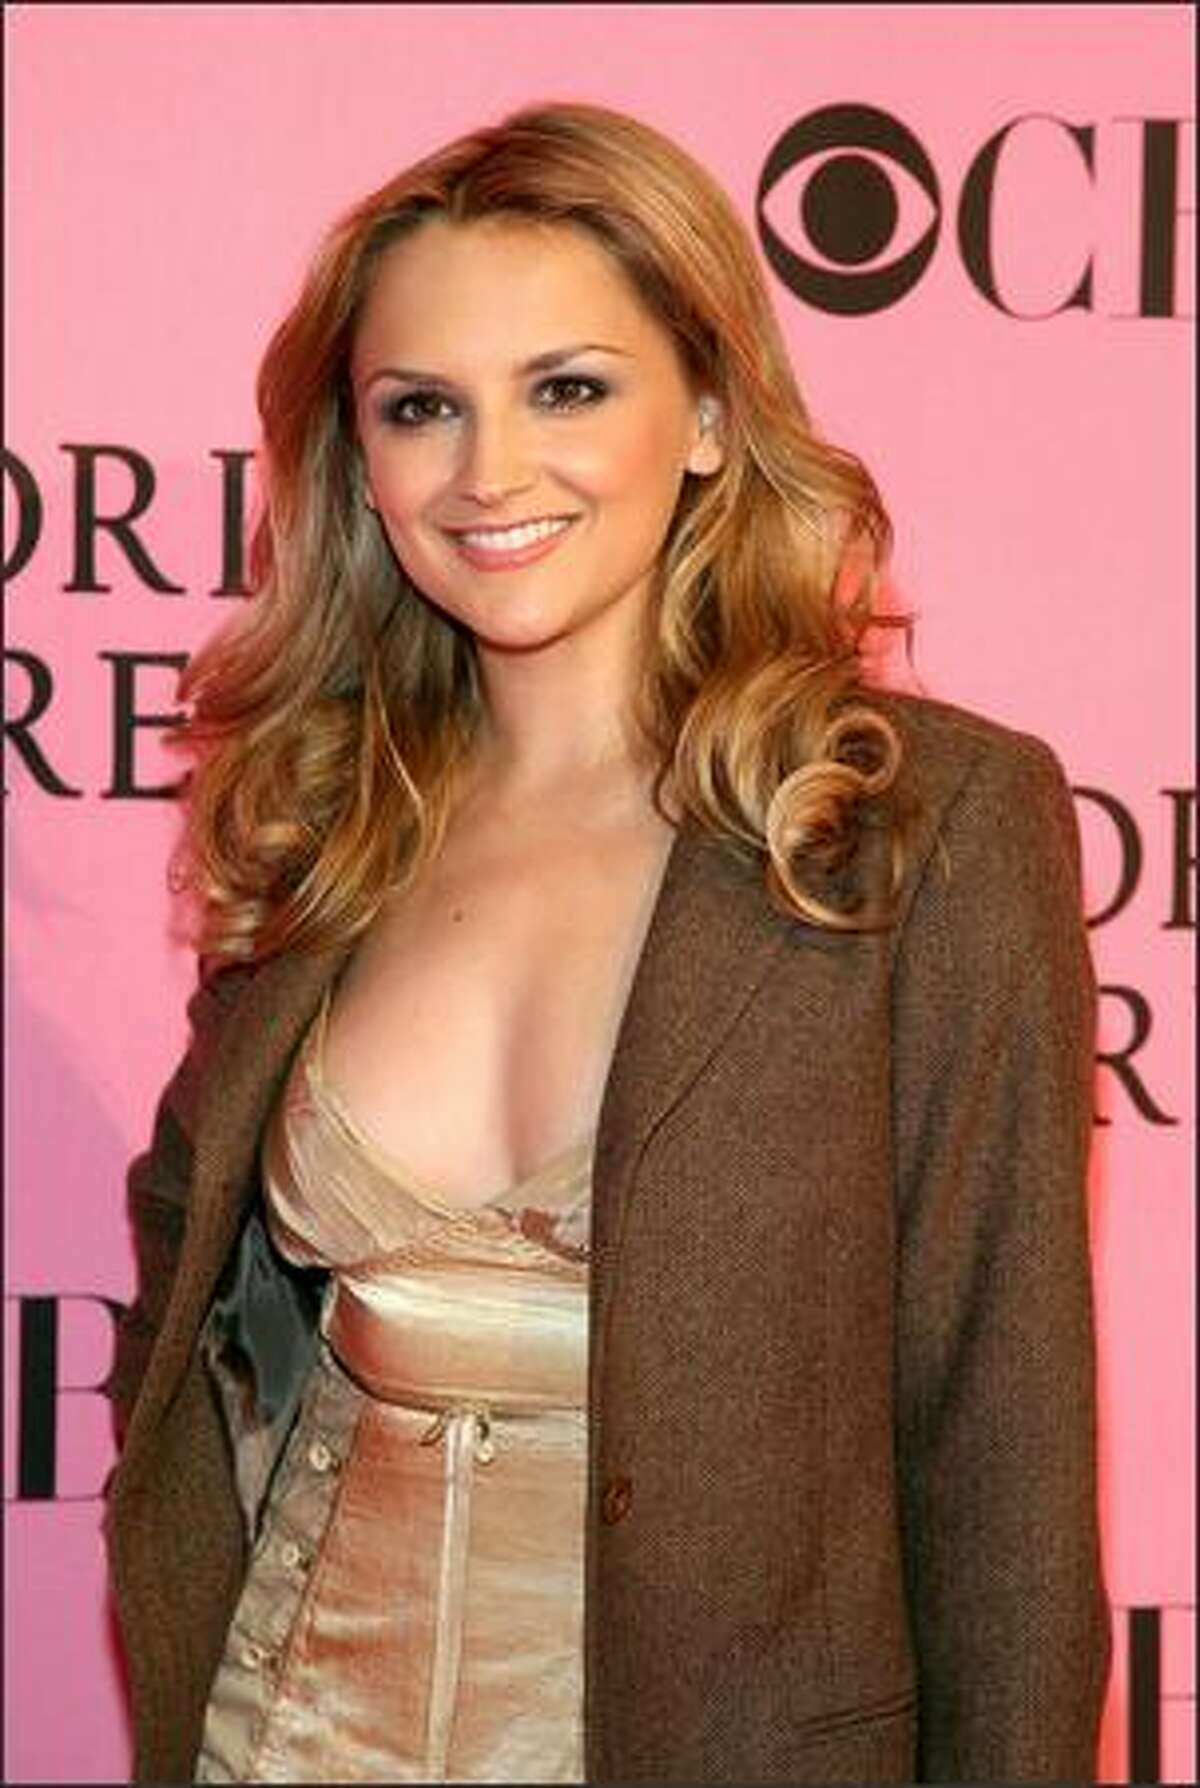 Actress Rachael Leigh Cook arrives at the 2007 Victoria's Secret fashion show held at the Kodak Theatre in Hollywood, Calif. The show will be broadcast Dec. 4 on CBS.